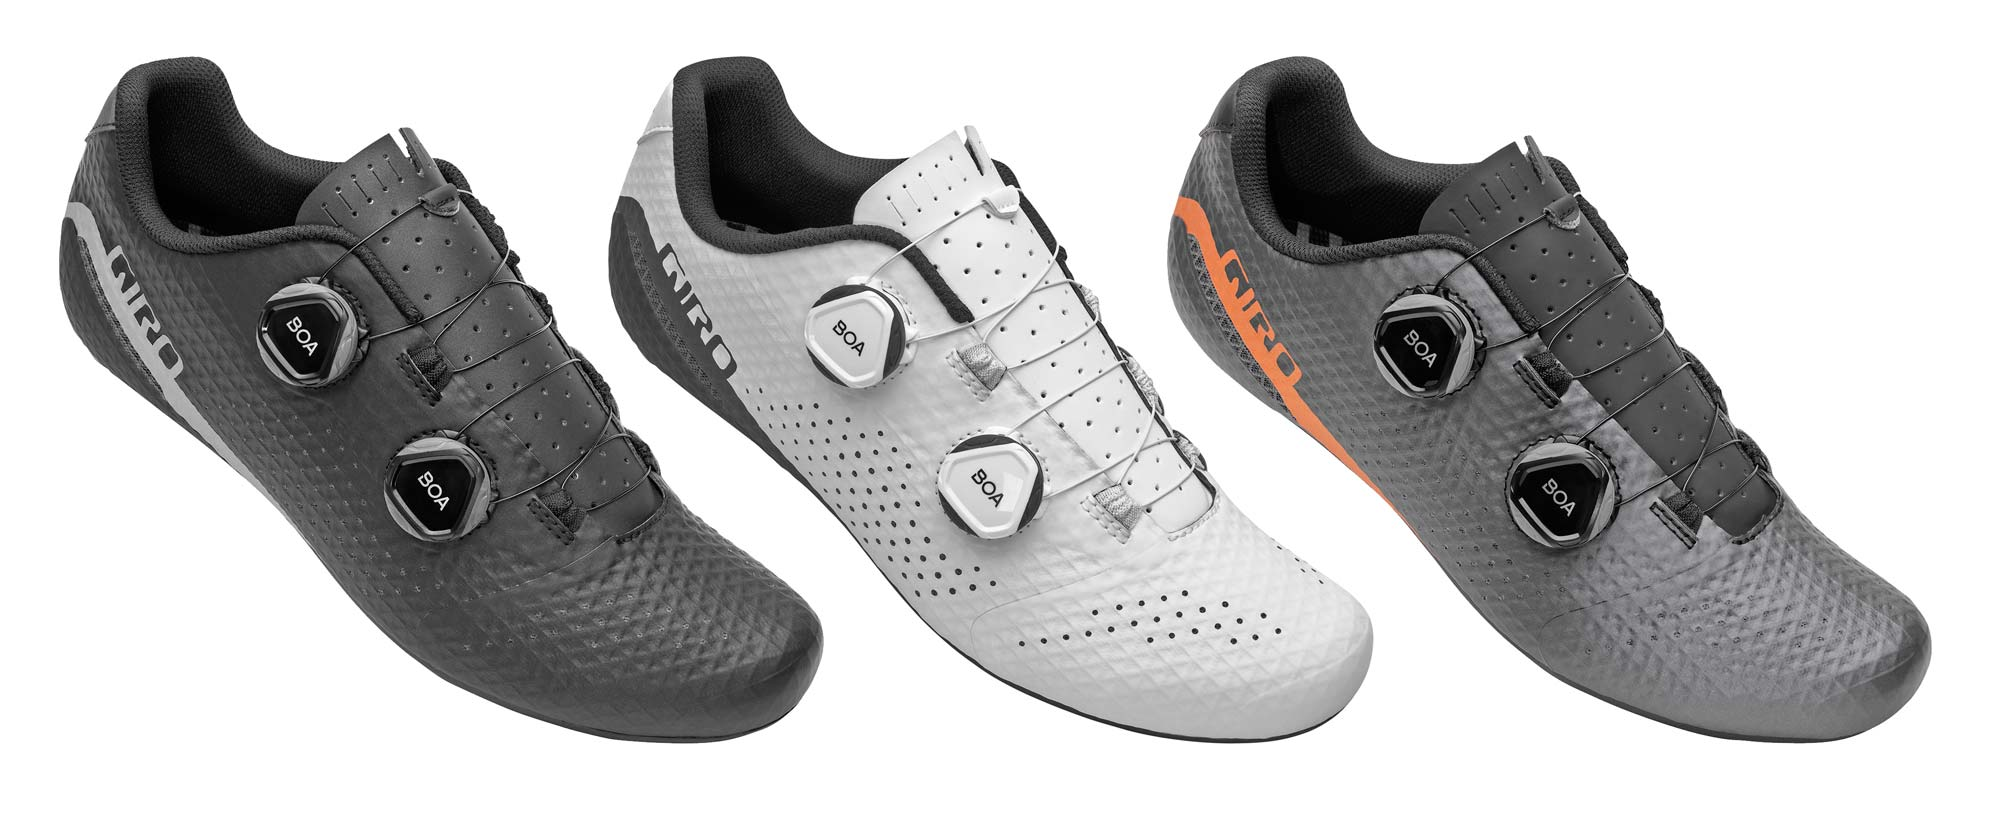 Giro Regime high performance road shoes at a mid-level price, colors